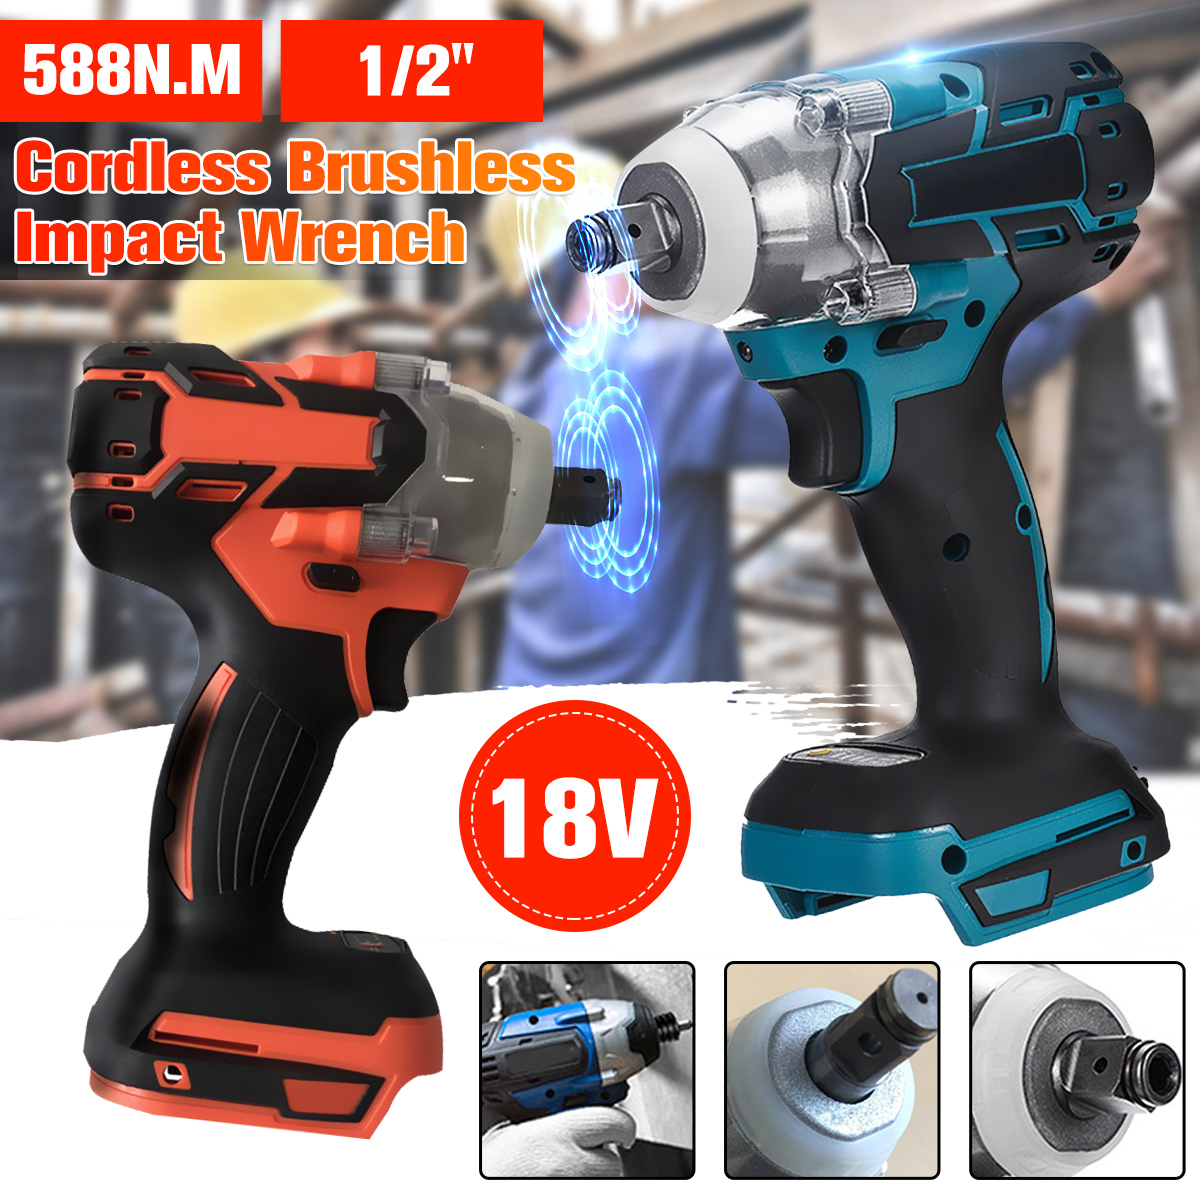 18V 588N.m Electric Rechargeable Brushless Impact Wrench 1/2